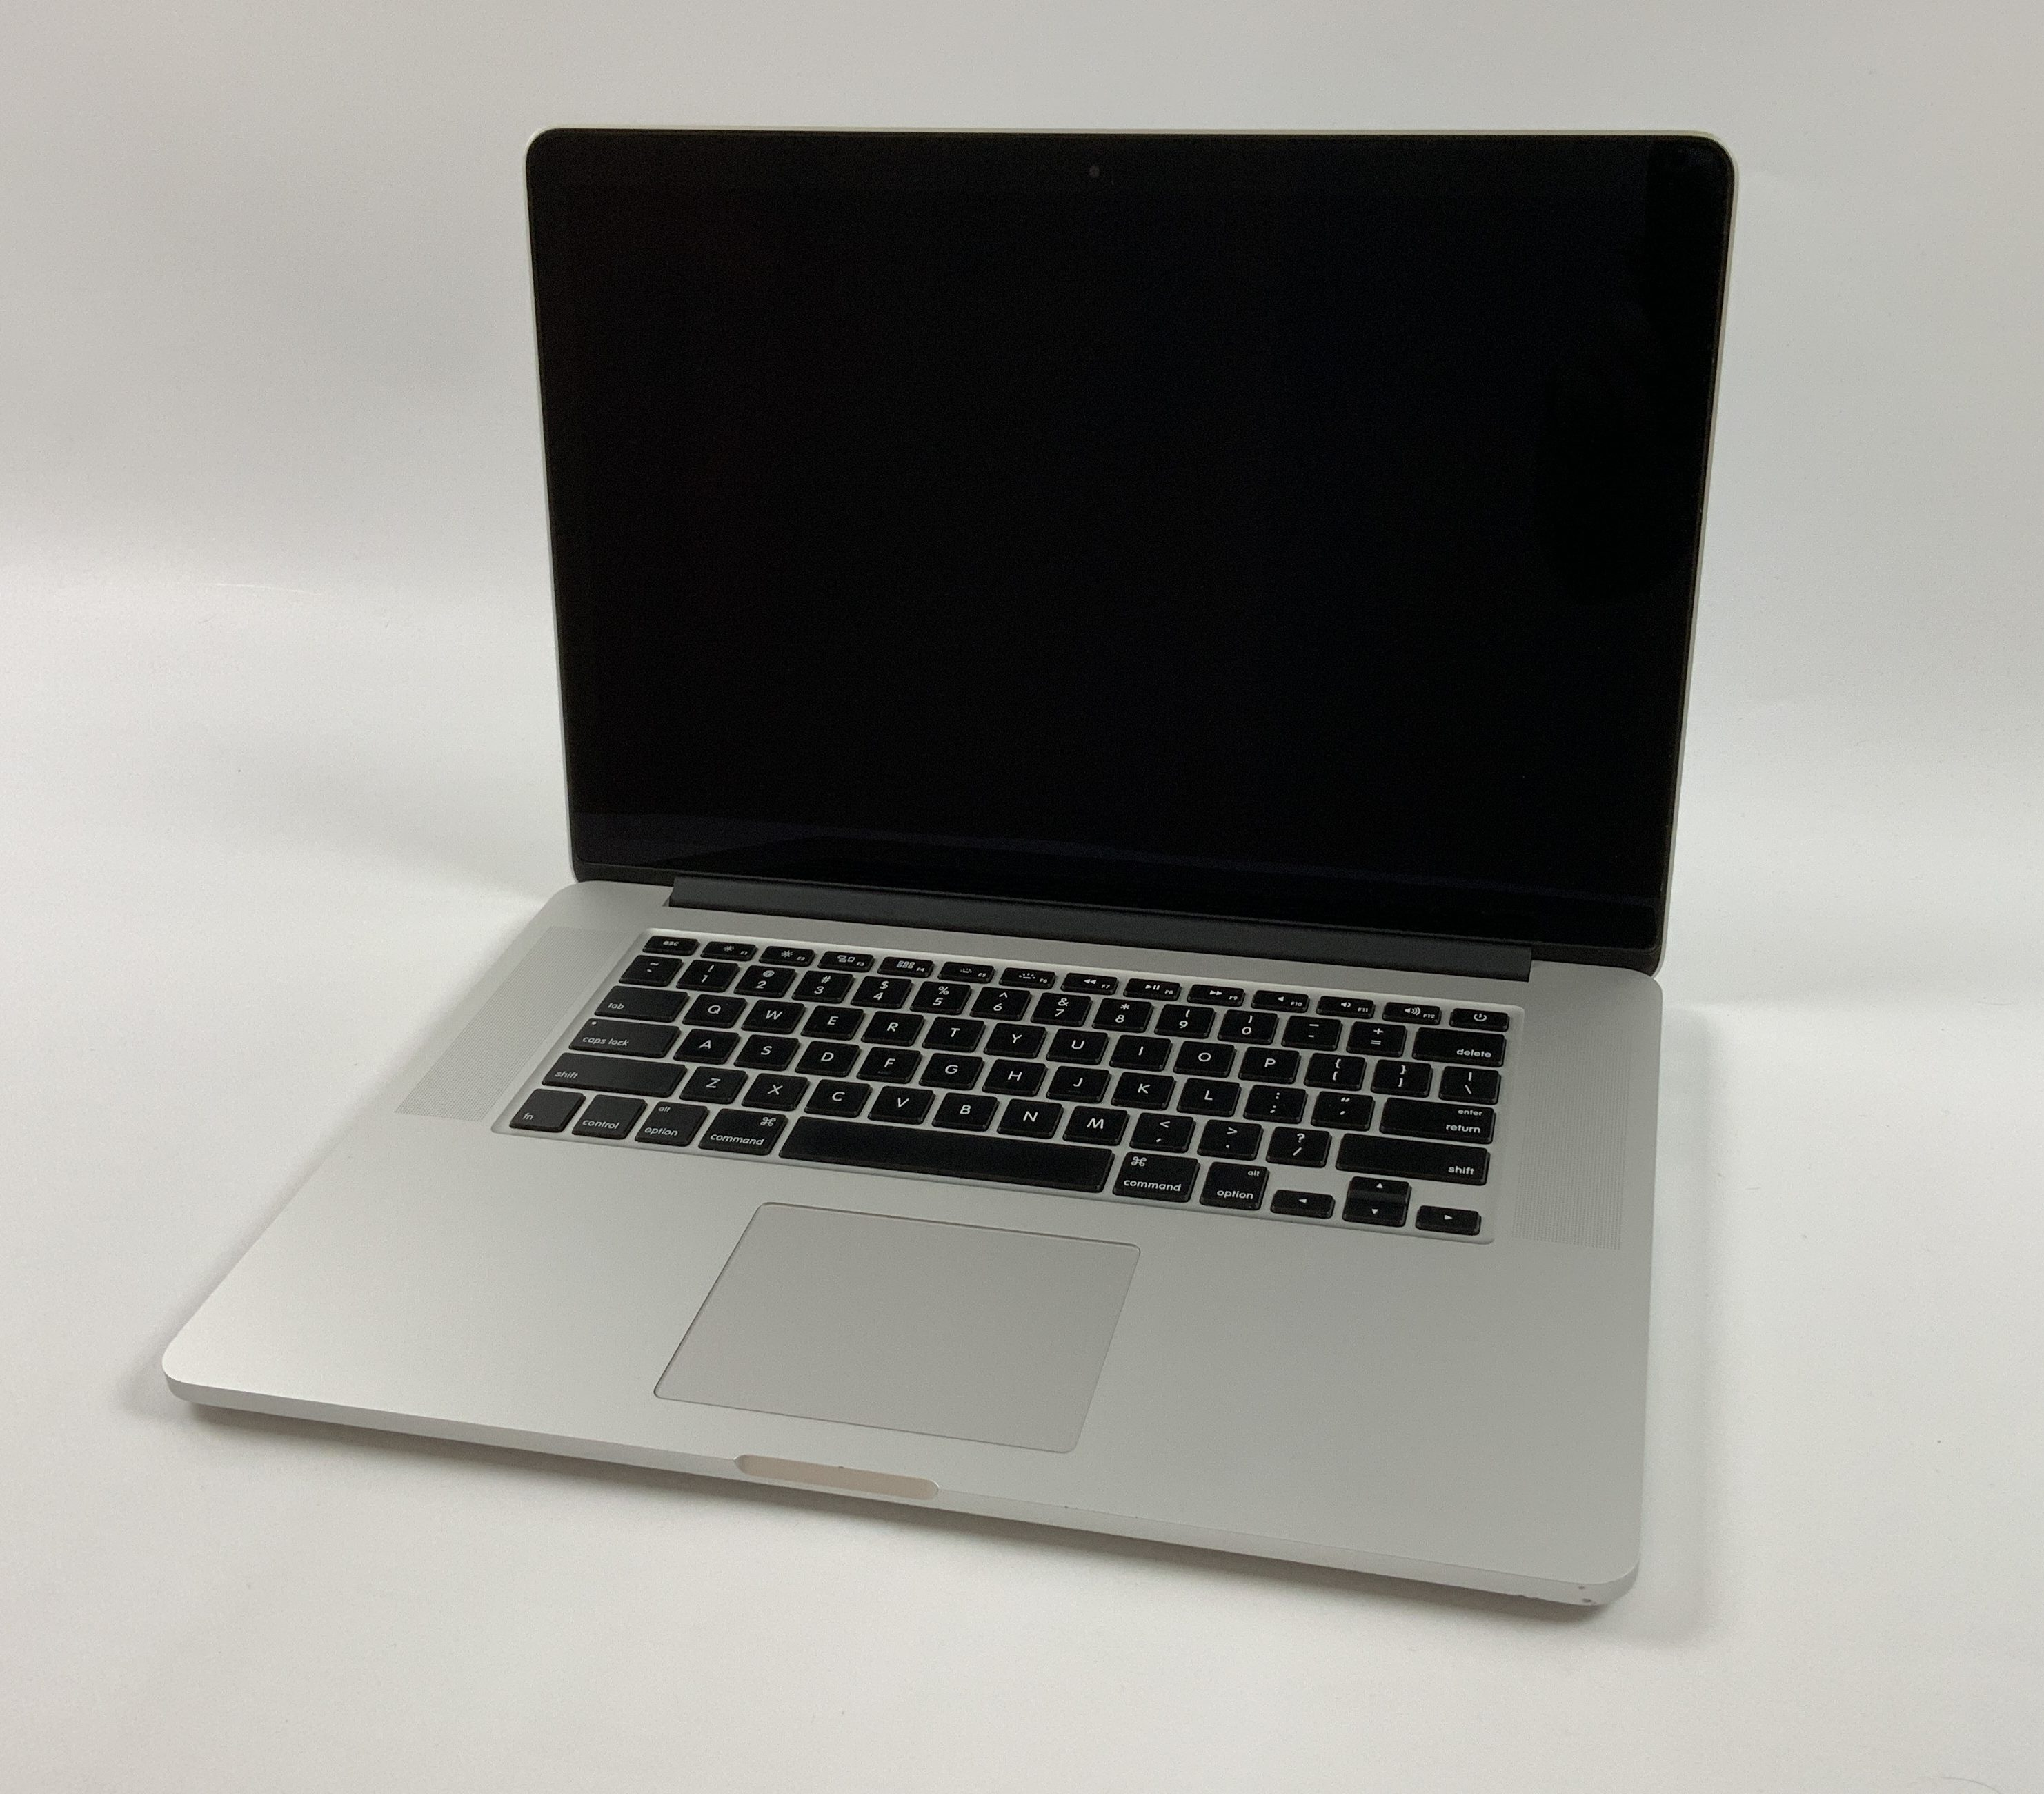 "MacBook Pro Retina 15"" Mid 2015 (Intel Quad-Core i7 2.2 GHz 16 GB RAM 256 GB SSD), Intel Quad-Core i7 2.2 GHz, 16 GB RAM, 256 GB SSD, obraz 1"